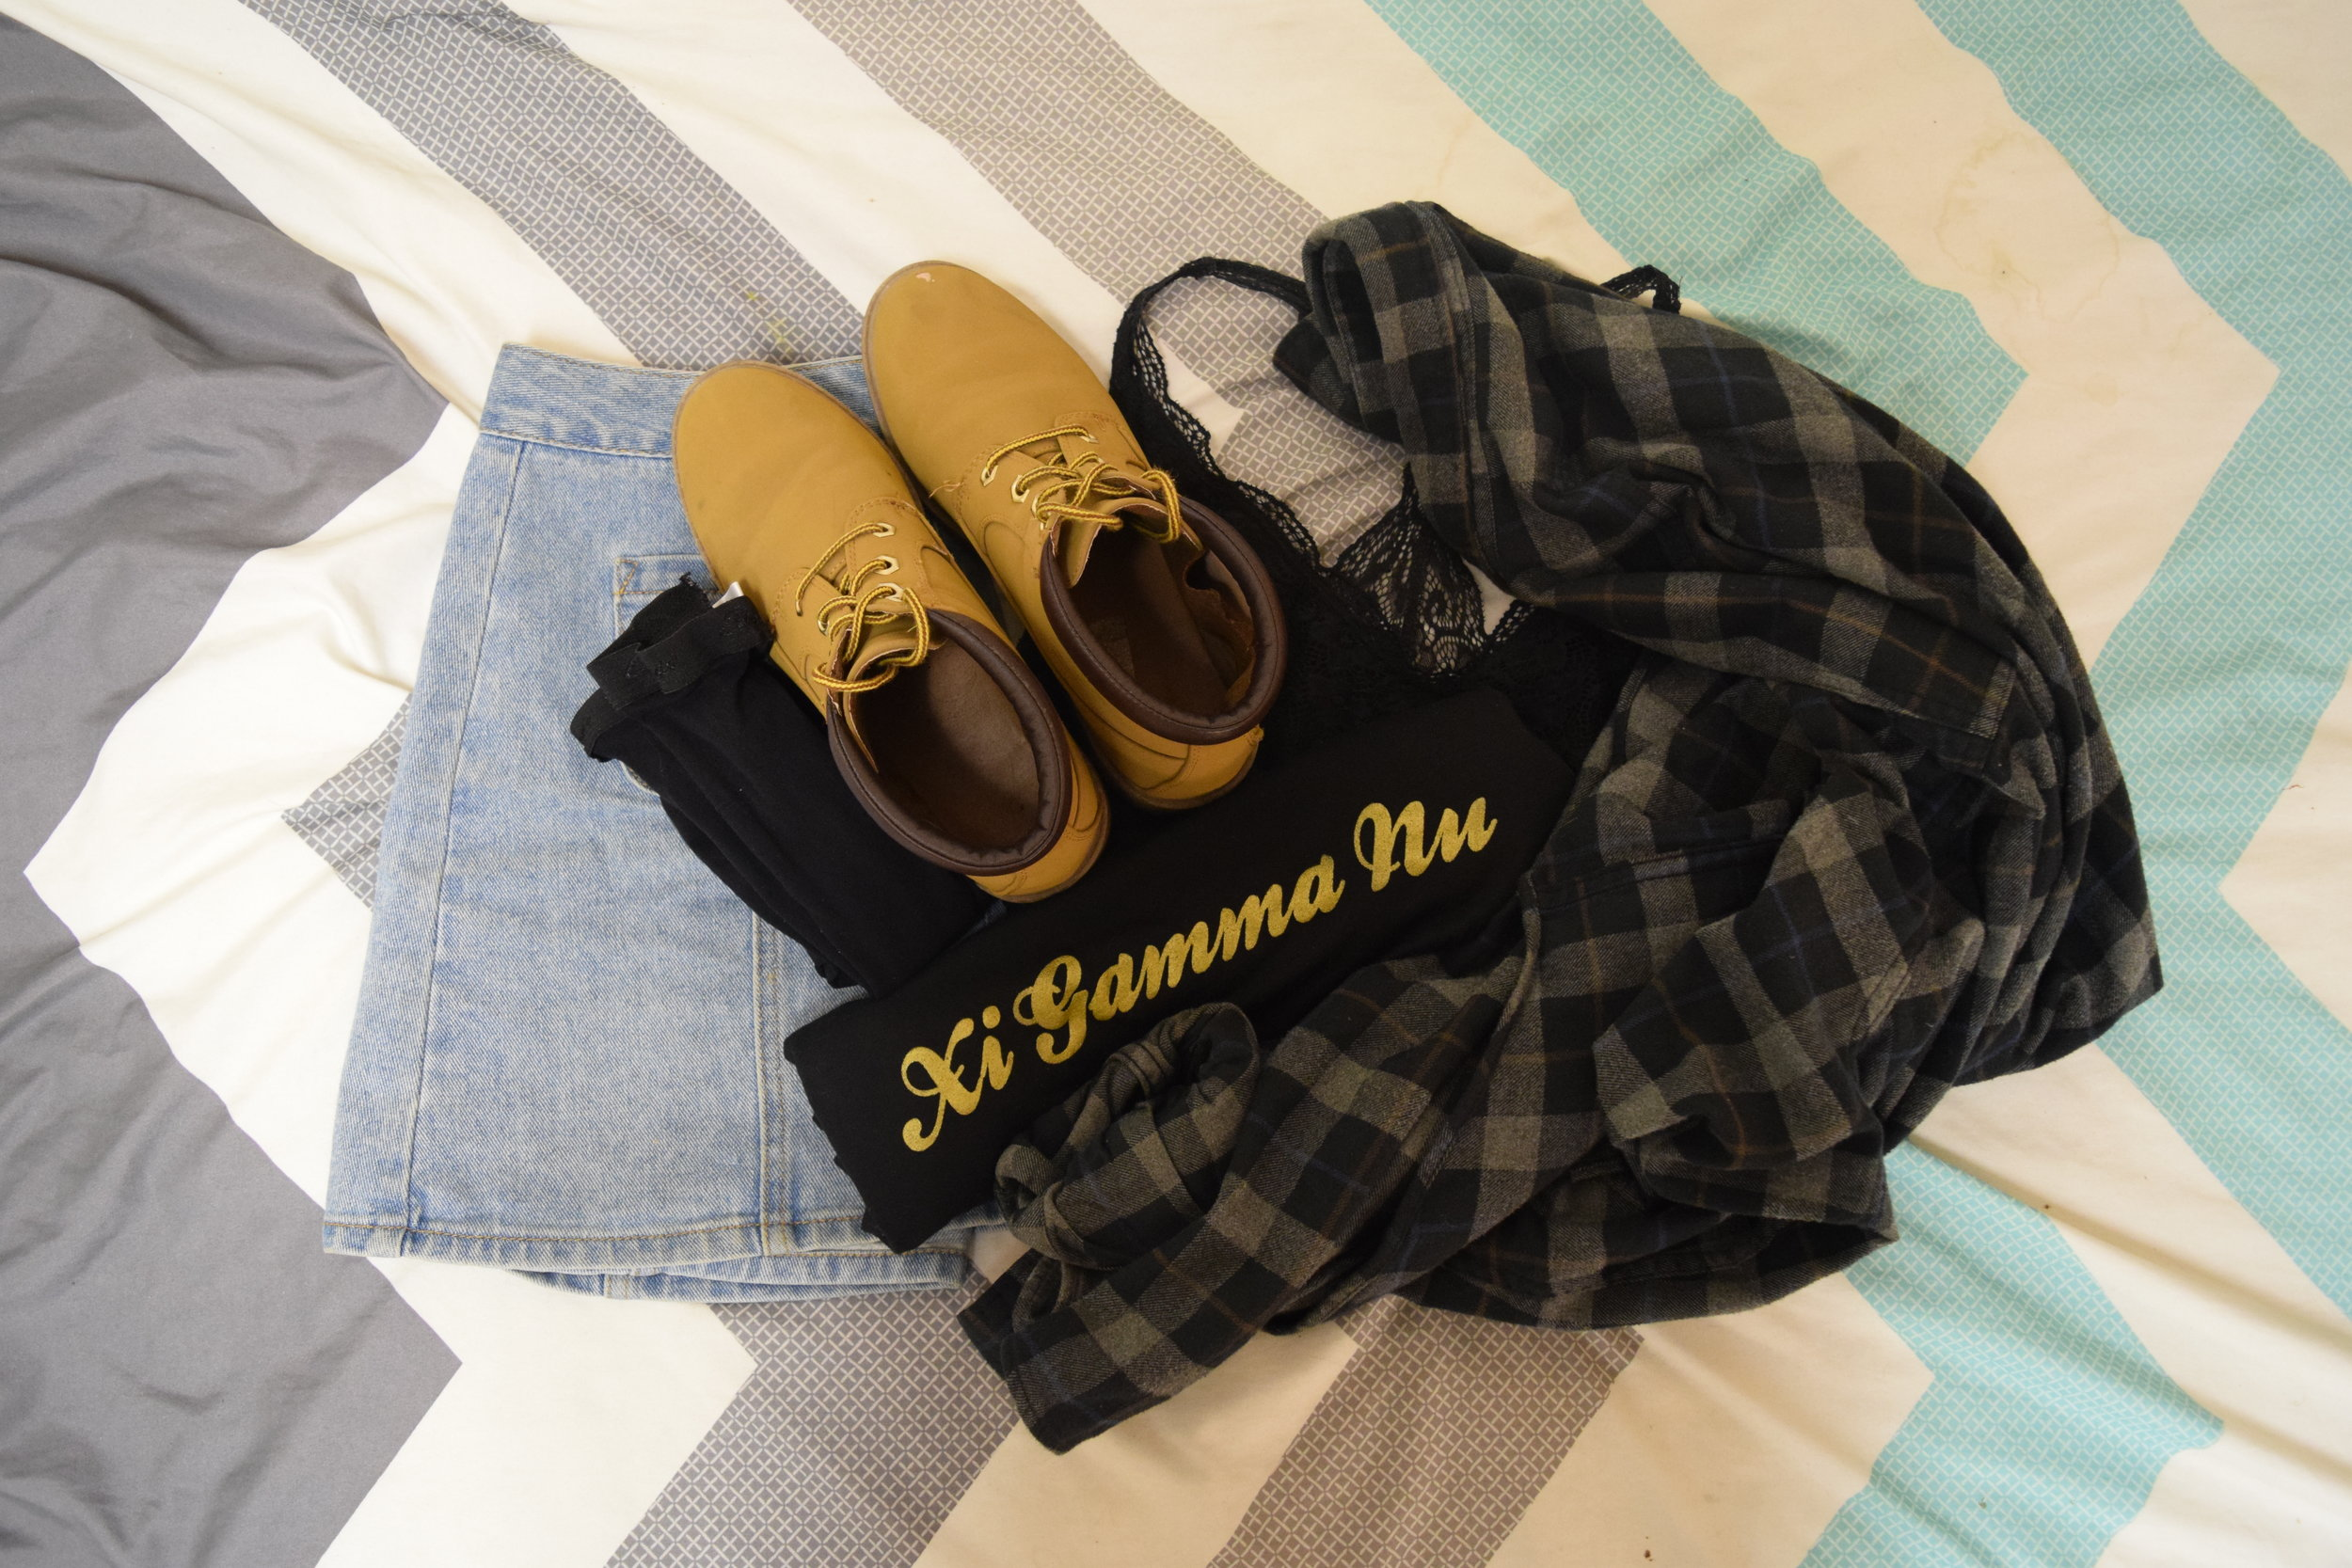 Shirt (Gamma exclusive bbs). Flannel (no longer being sold at  Eddie Bauer ). Bralette. Skirt (different color). Boots (no longer being sold at  Primark ).